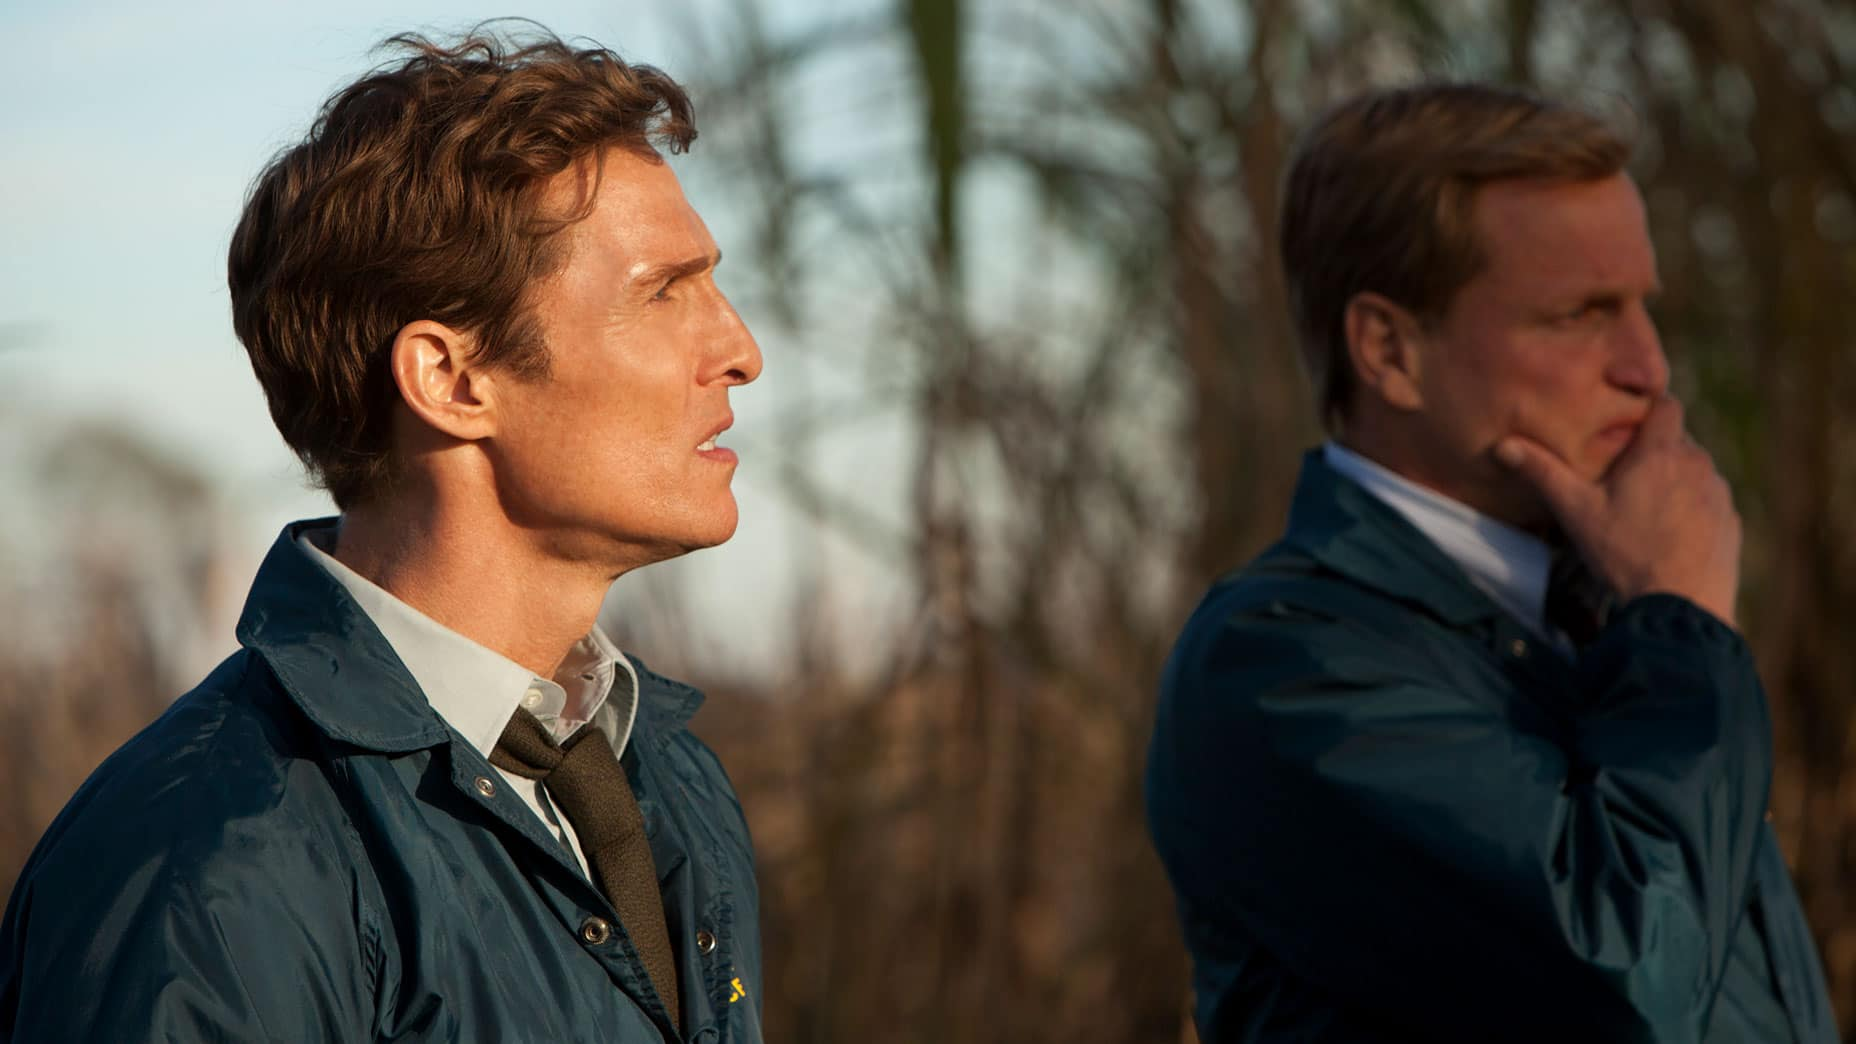 True Detective (2014), HBO, USA, 35mm, Detective Rust Cohle (Matthew McConaughey), Detective Marty Hart (Woody Harrelson)